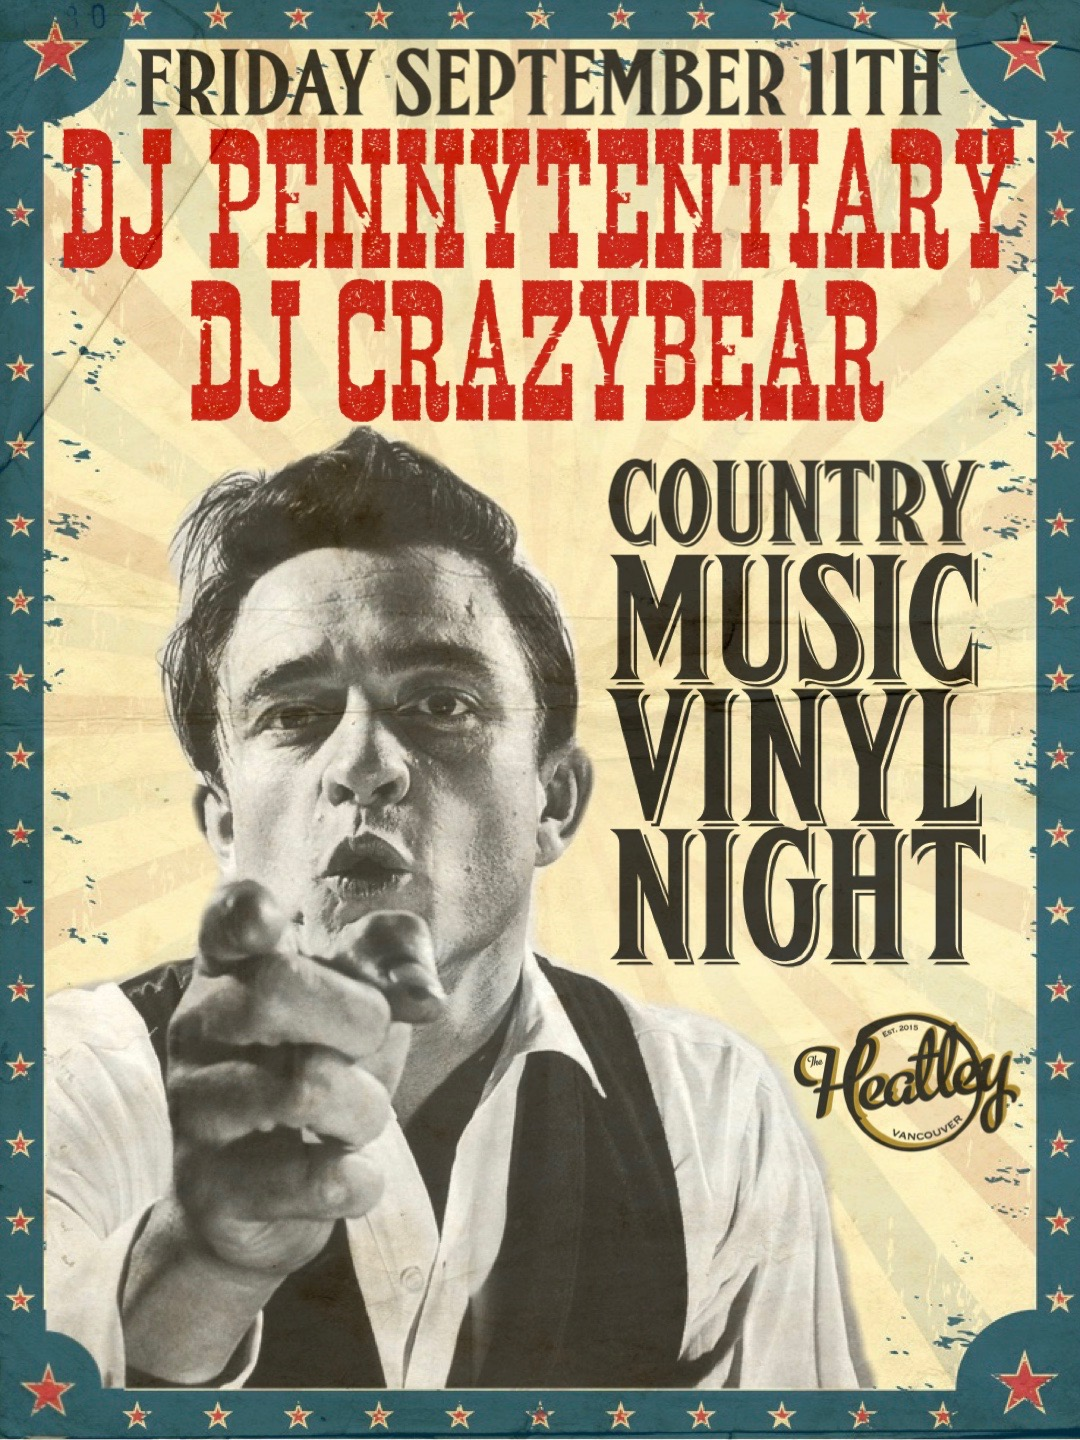 When times are tough, we listen to country. C'mon down and enjoy some great country tunes as selected by @pennstagam and @himalayanbear tonight @theheatley696 DJ set 8pm-11pm. Last call at for alcohol at 10pm.